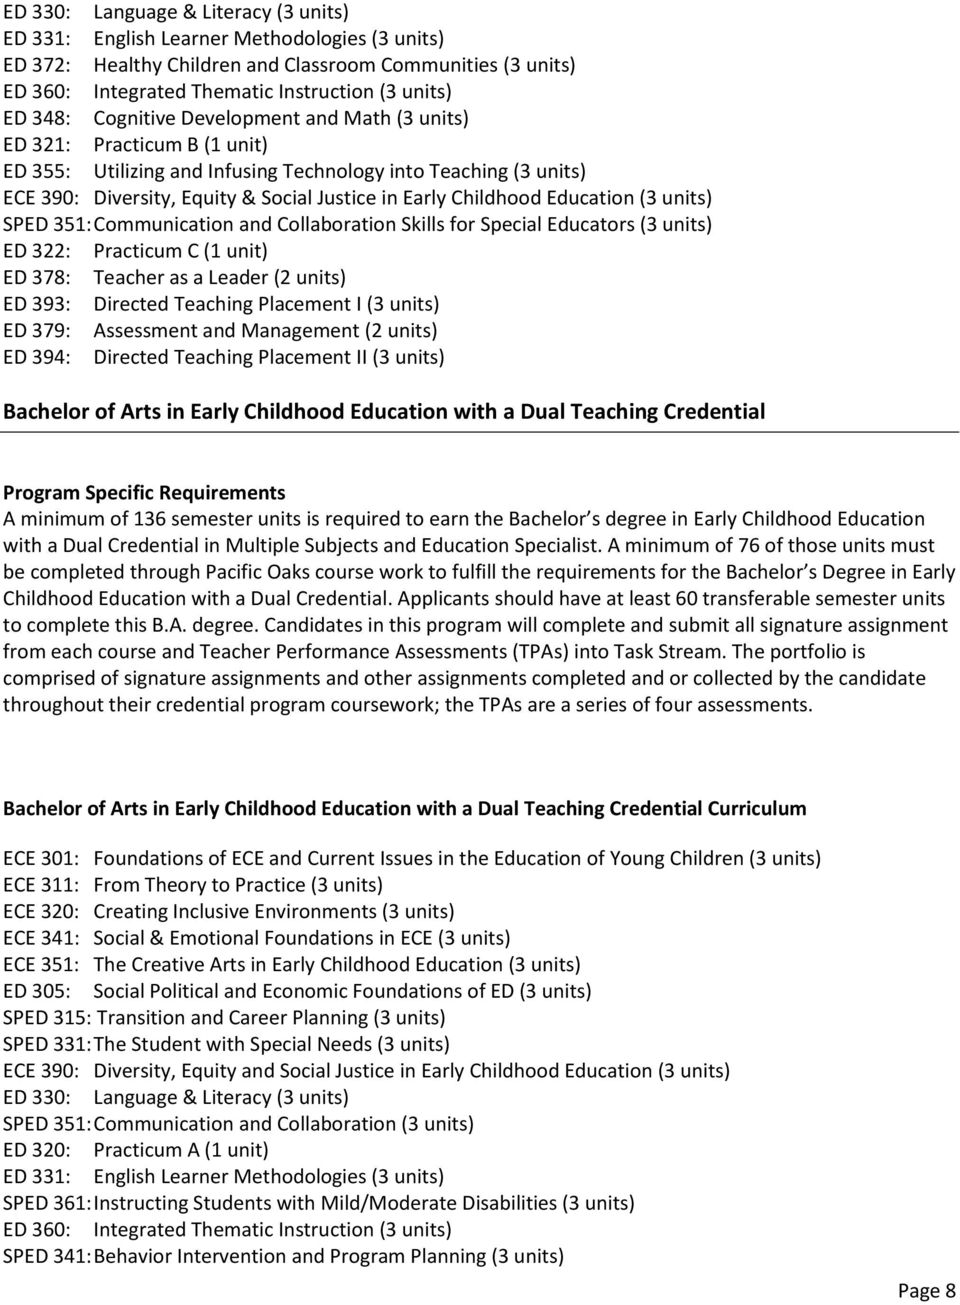 Childhood Education (3 units) SPED 351: Communication and Collaboration Skills for Special Educators (3 units) ED 322: Practicum C (1 unit) ED 378: Teacher as a Leader (2 units) ED 393: Directed